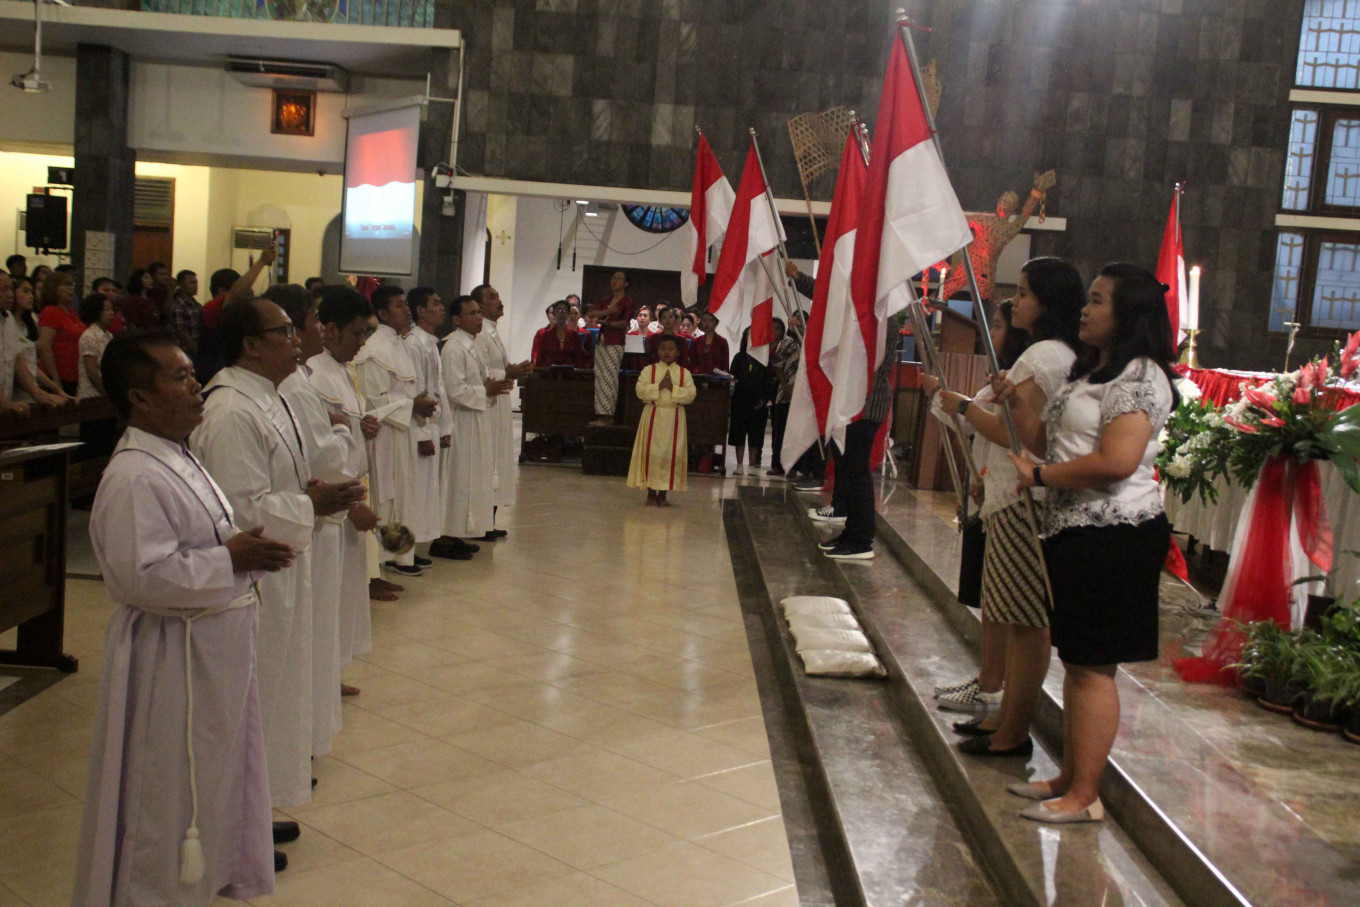 The congregation of St. Theresia Bongsari Catholic Church in Semarang holds a mass to celebrate Indonesia's Independence Day on Aug. 17. Altar boys carry the national flag and the church choir sings the national anthem in its three stanzas. JP/Suherdjoko